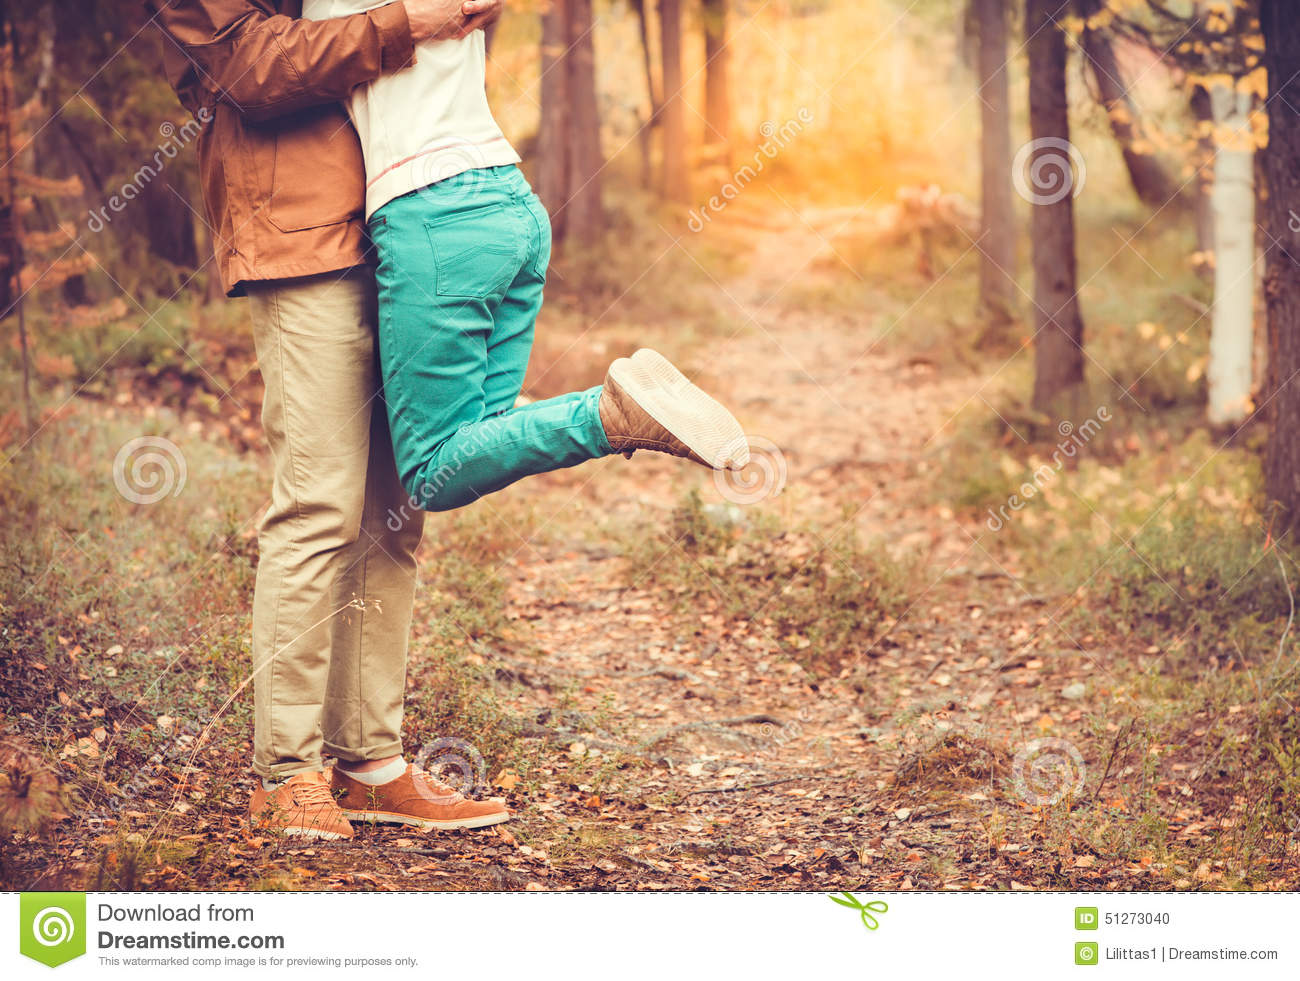 Couple Man and Woman hugging in Love Romantic relationship